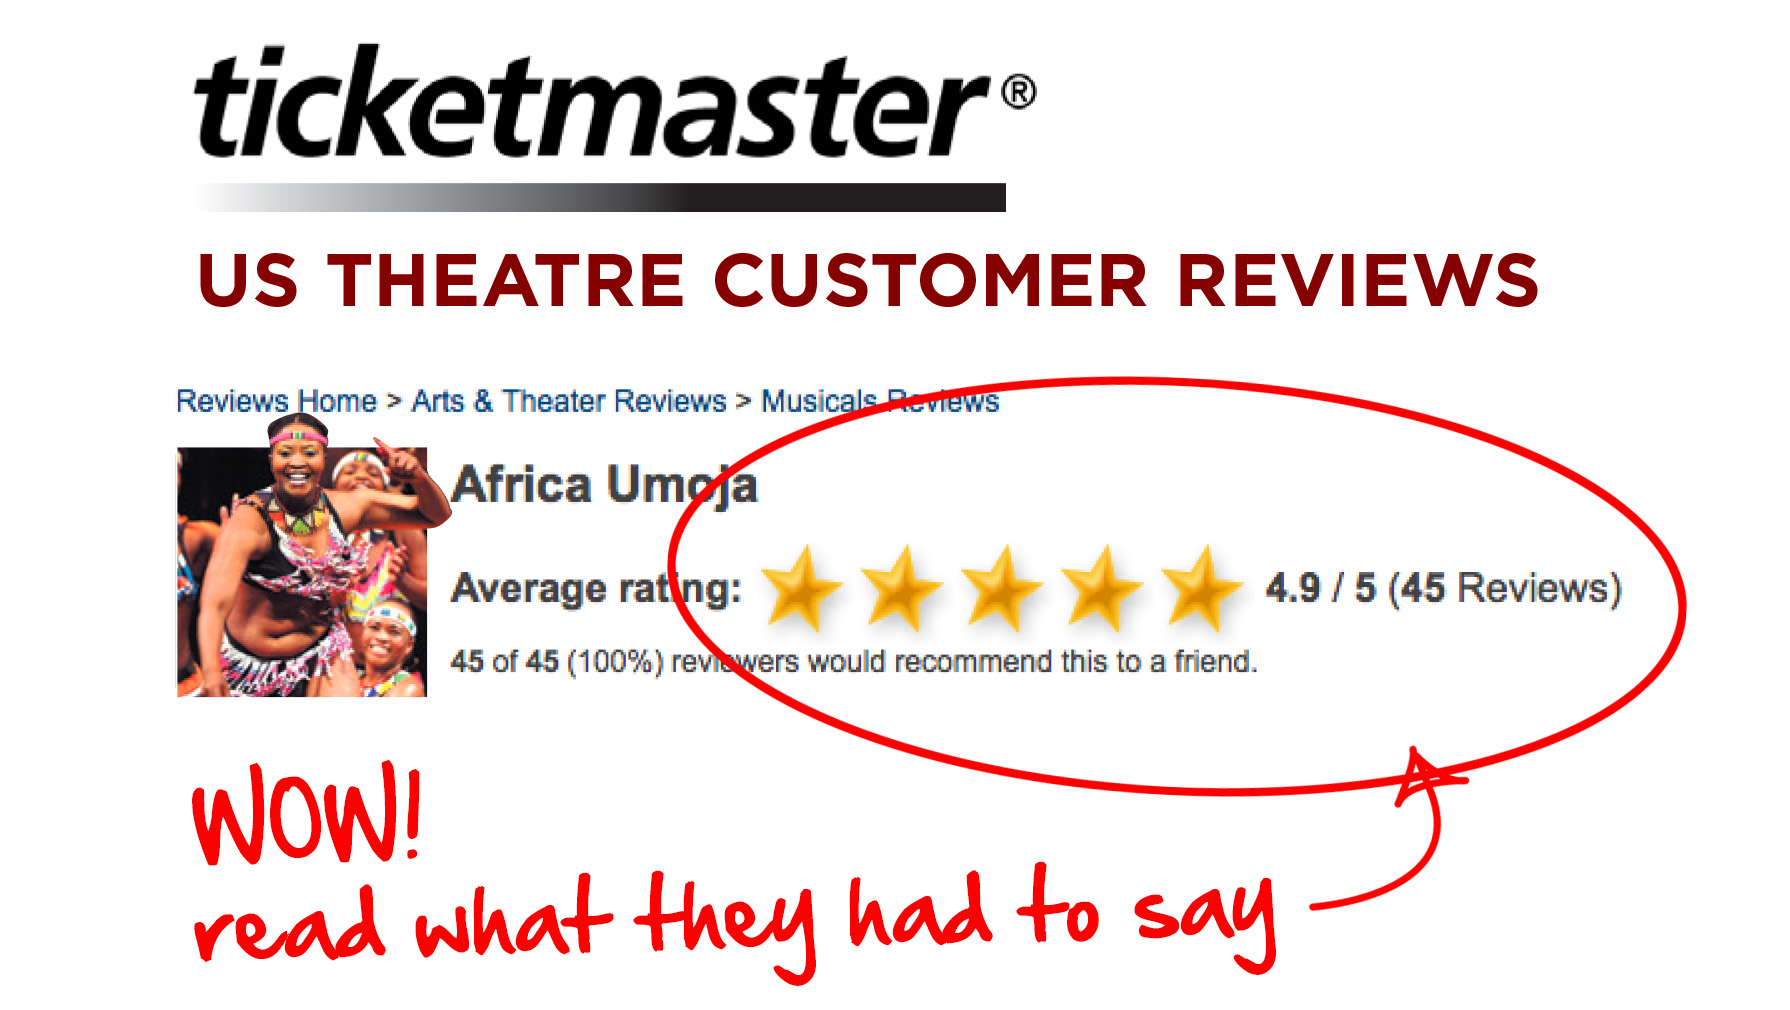 Ticketmaster.com theater customer reviews award AFRICA UMOJA 4.9/5 starts